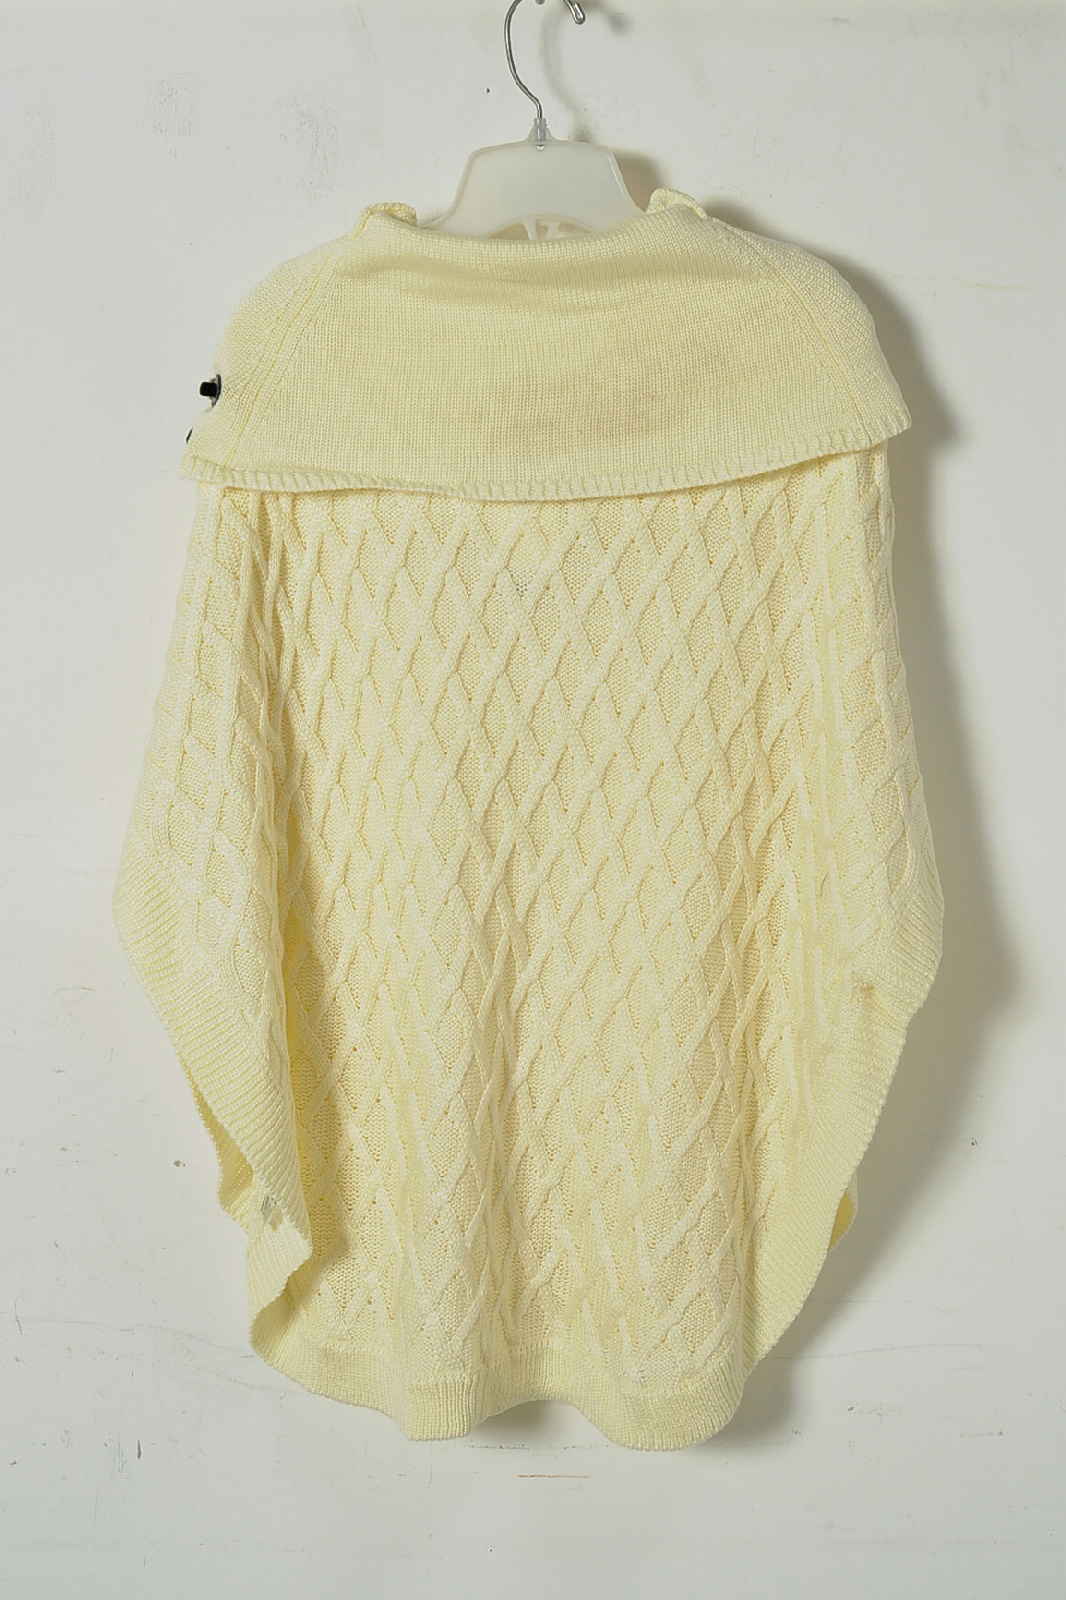 Cowl Neck Poncho Knitting Pattern : NWT Ivory Basket Knit Cowl Neck Poncho Sweater Size S/M eBay